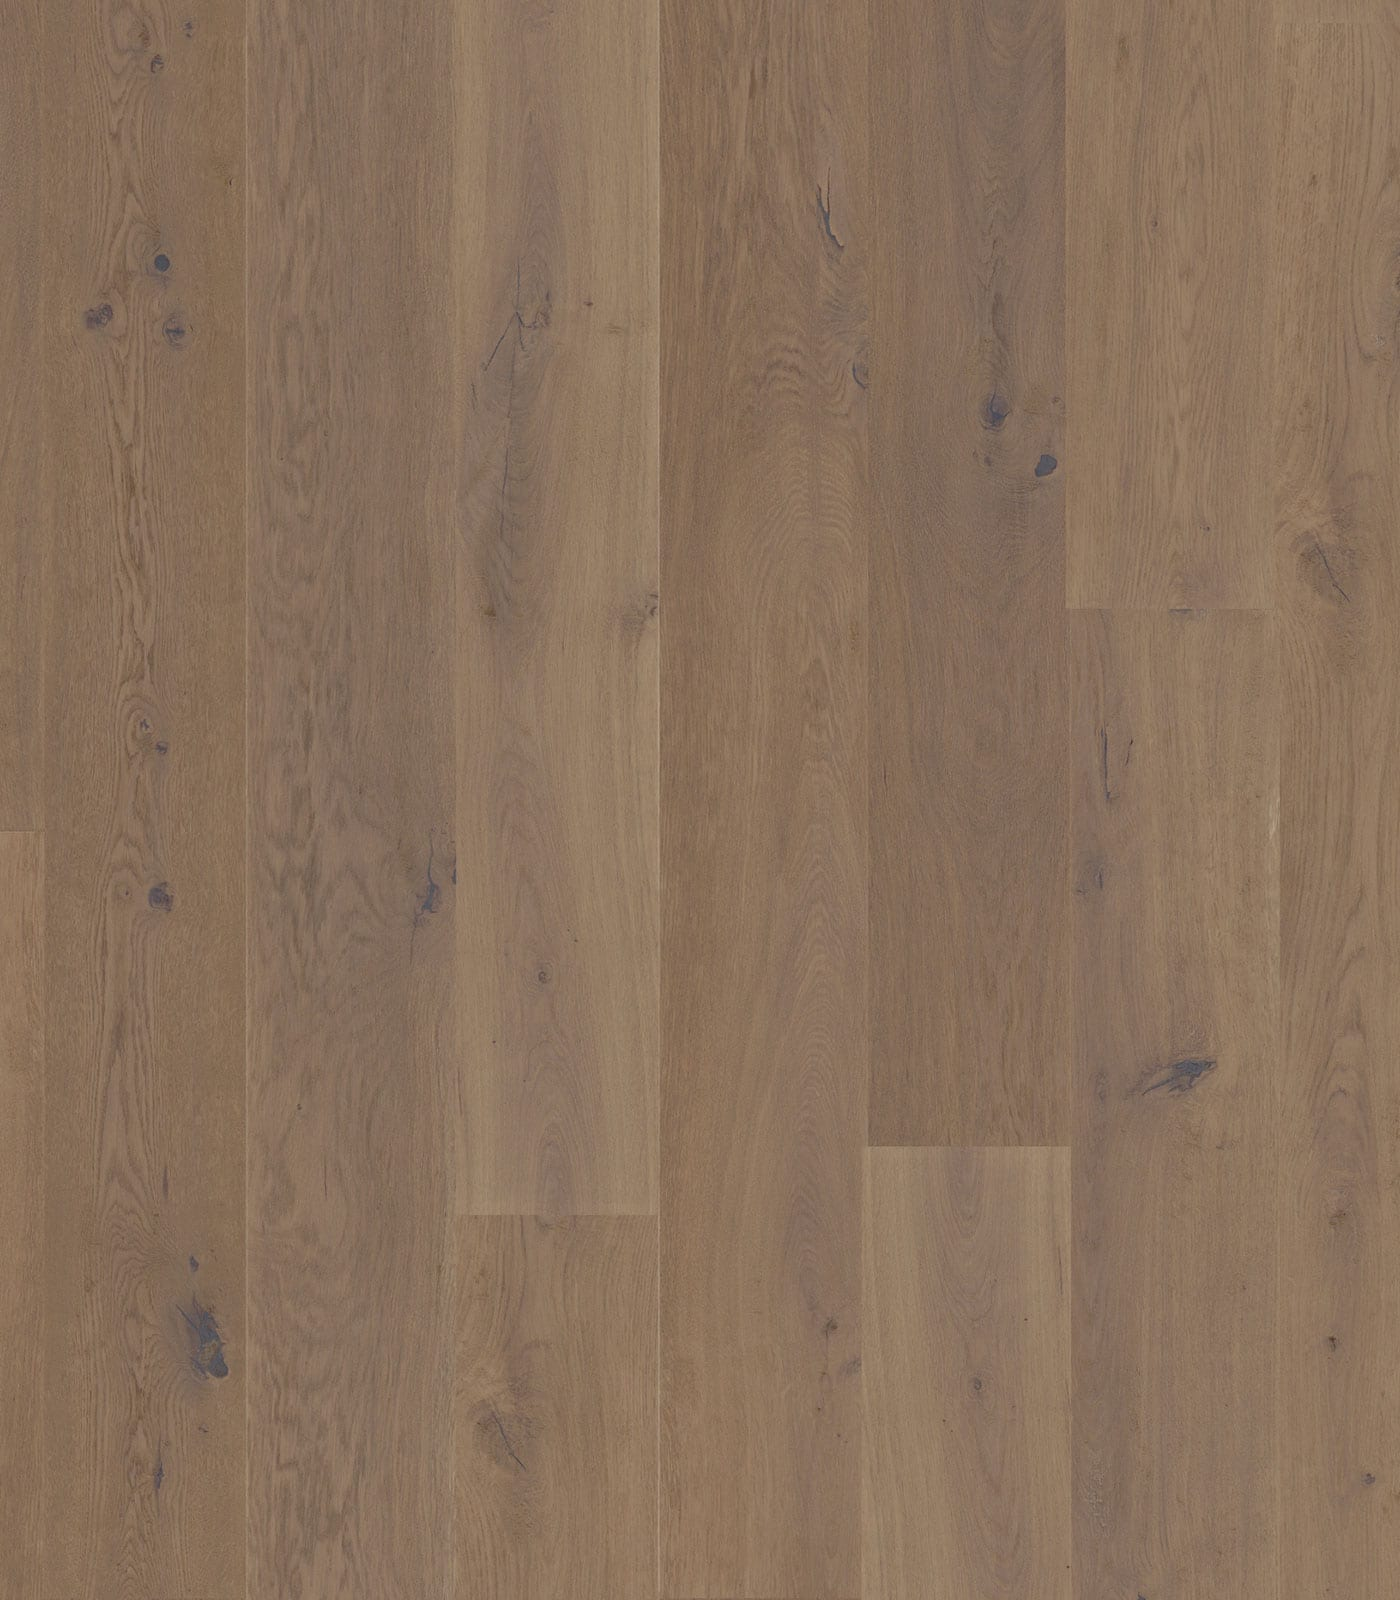 Apennines-Antique Collection-European Oak Floors-flat